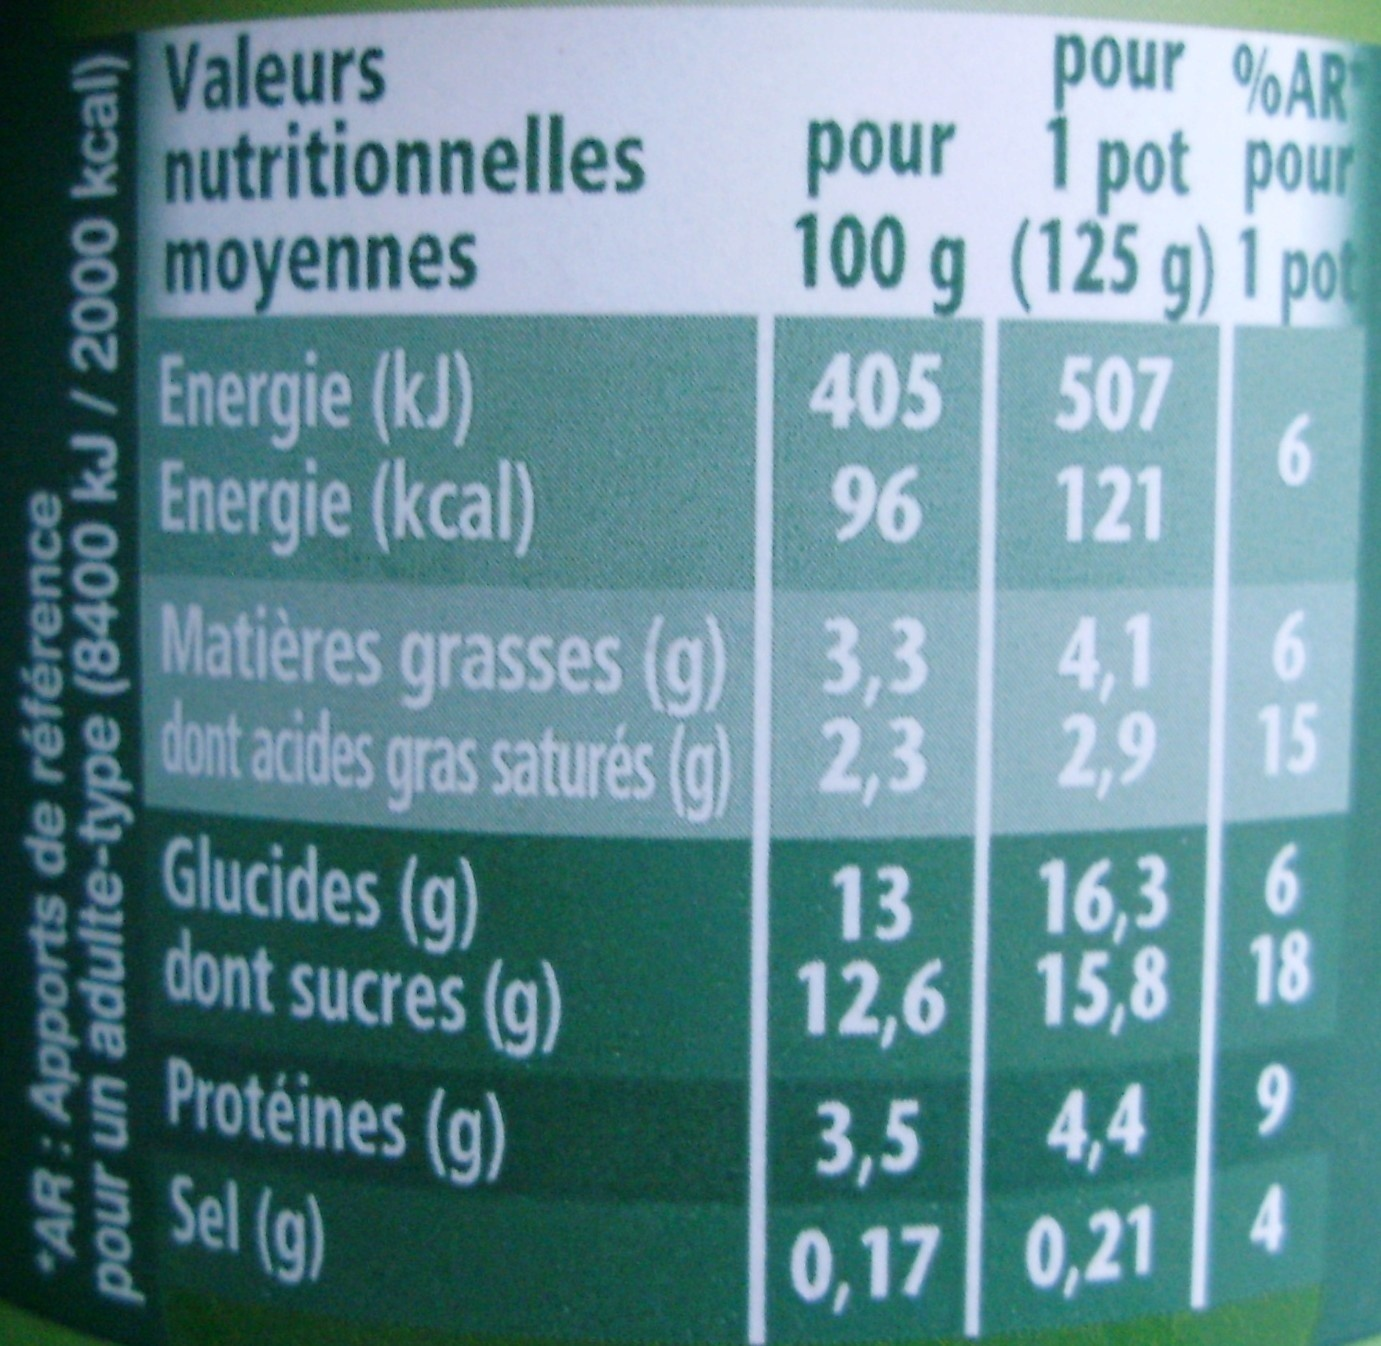 Activia Fruits (Rhubarbe) - Informations nutritionnelles